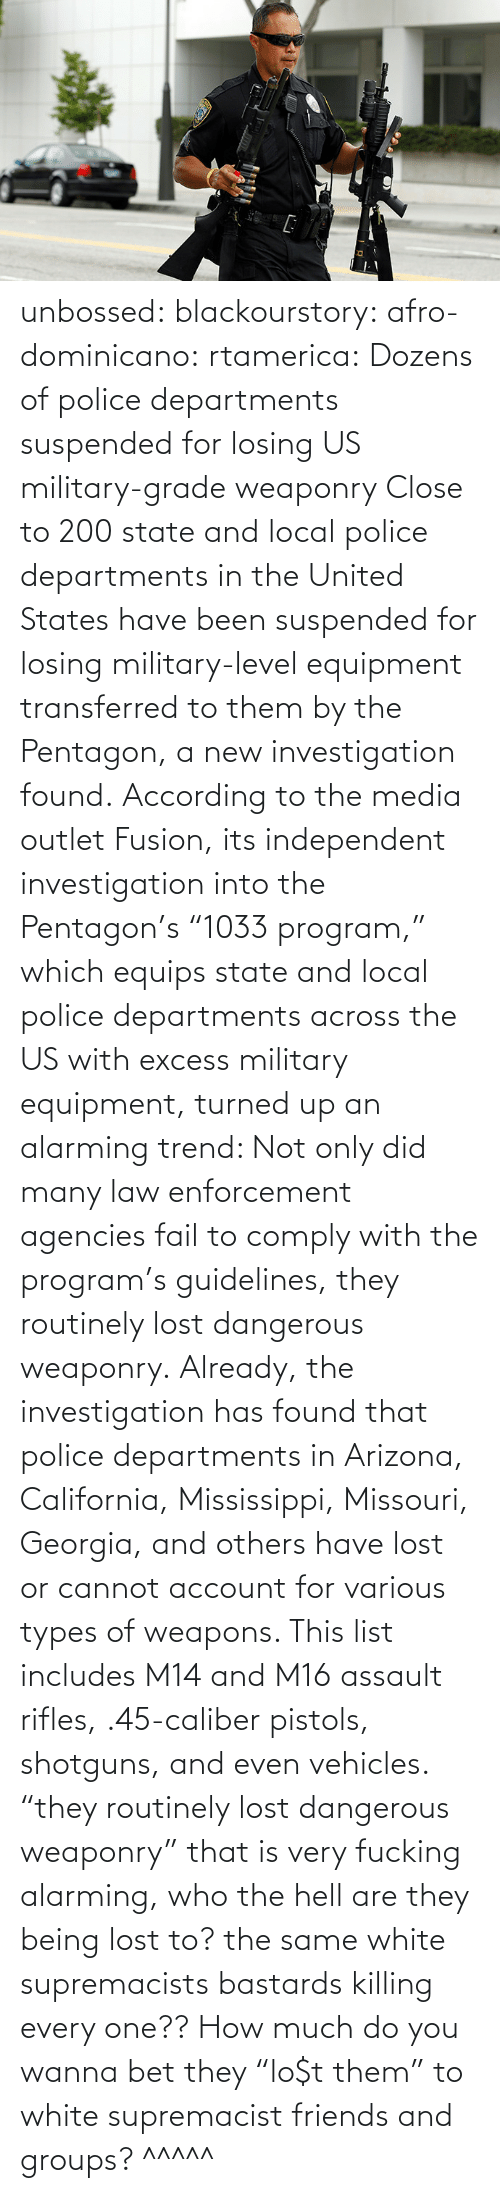 "list: unbossed: blackourstory:  afro-dominicano:  rtamerica:  Dozens of police departments suspended for losing US military-grade weaponry Close to 200 state and local police departments in the United States have been suspended for losing military-level equipment transferred to them by the Pentagon, a new investigation found. According to the media outlet Fusion, its independent investigation into the Pentagon's ""1033 program,"" which equips state and local police departments across the US with excess military equipment, turned up an alarming trend: Not only did many law enforcement agencies fail to comply with the program's guidelines, they routinely lost dangerous weaponry. Already, the investigation has found that police departments in Arizona, California, Mississippi, Missouri, Georgia, and others have lost or cannot account for various types of weapons. This list includes M14 and M16 assault rifles, .45-caliber pistols, shotguns, and even vehicles.  ""they routinely lost dangerous weaponry"" that is very fucking alarming, who the hell are they being lost to? the same white supremacists bastards killing every one??  How much do you wanna bet they ""lo$t them"" to white supremacist friends and groups?   ^^^^^"